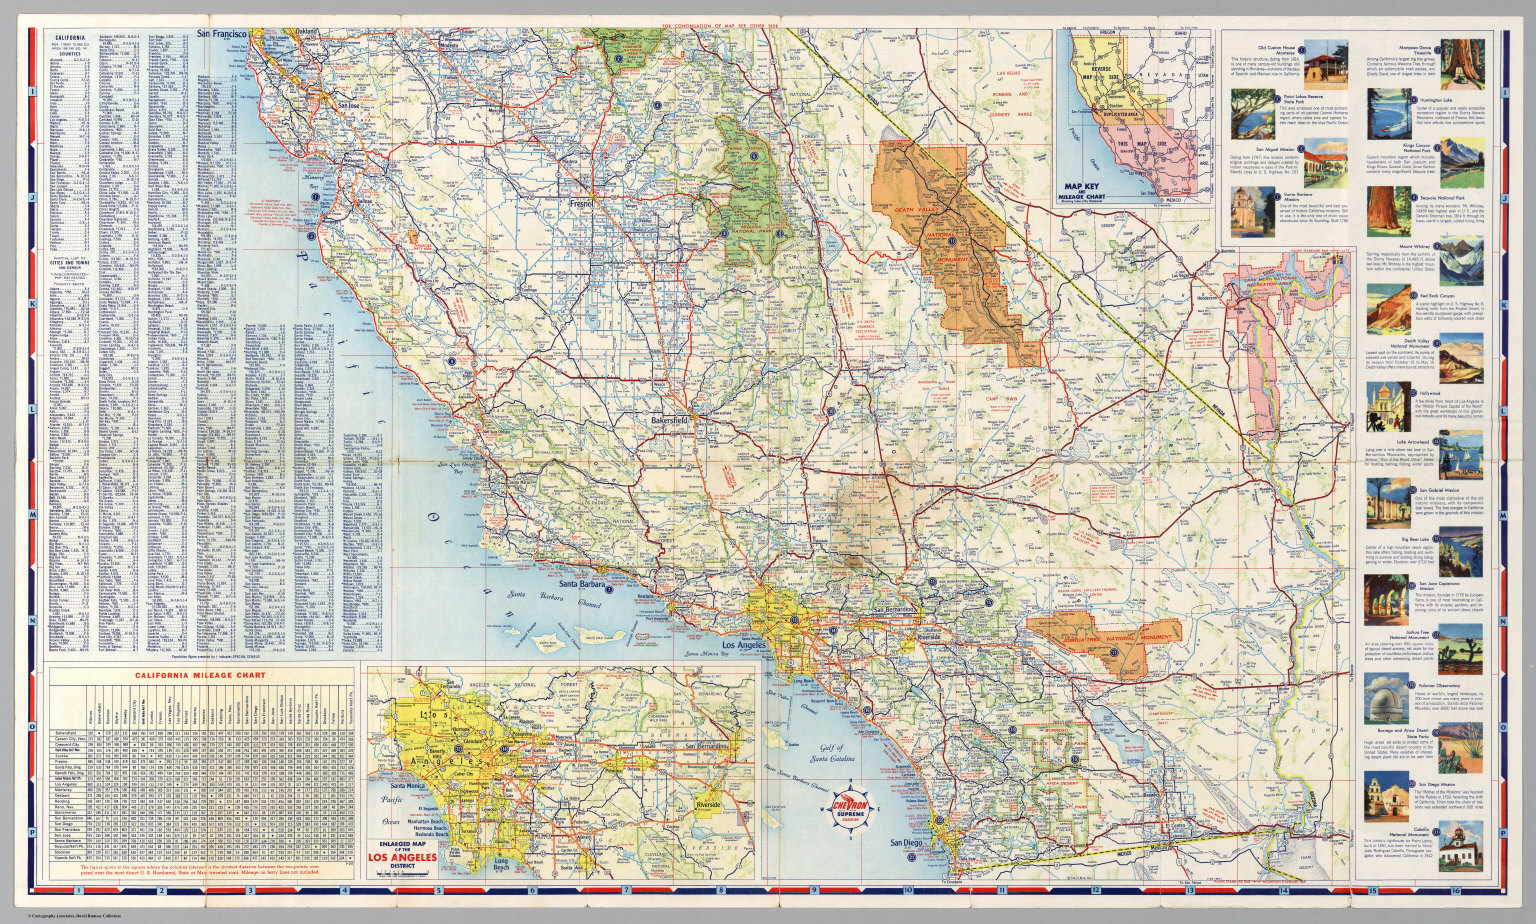 Road Map Of California South half) Road map of California   David Rumsey Historical Map  Road Map Of California